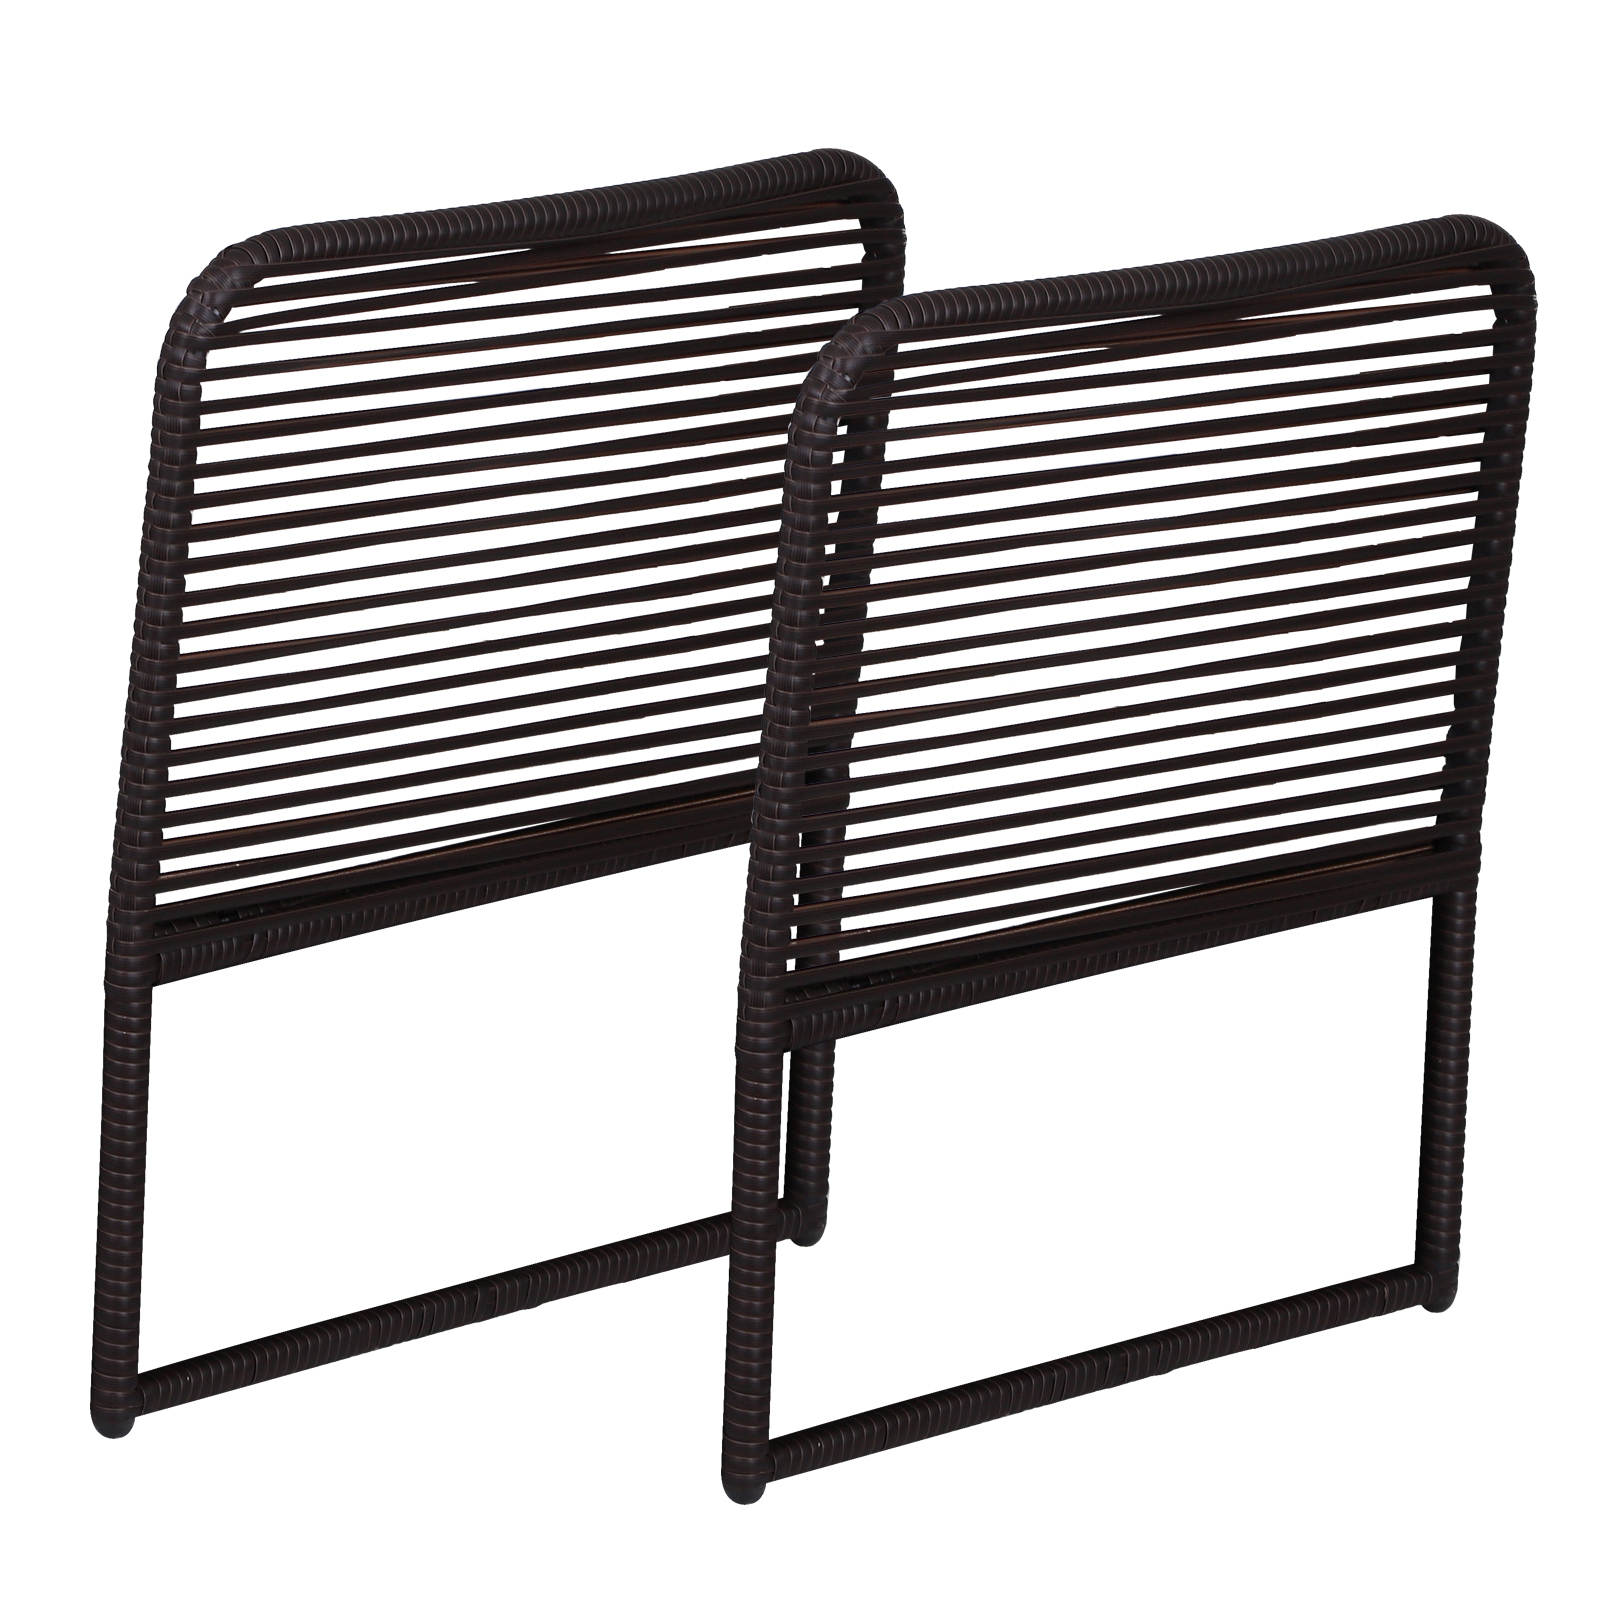 Outsunny Armrests Parts 2 PCs Outdoor Garden Furniture Rattan 63x60x6 Cm